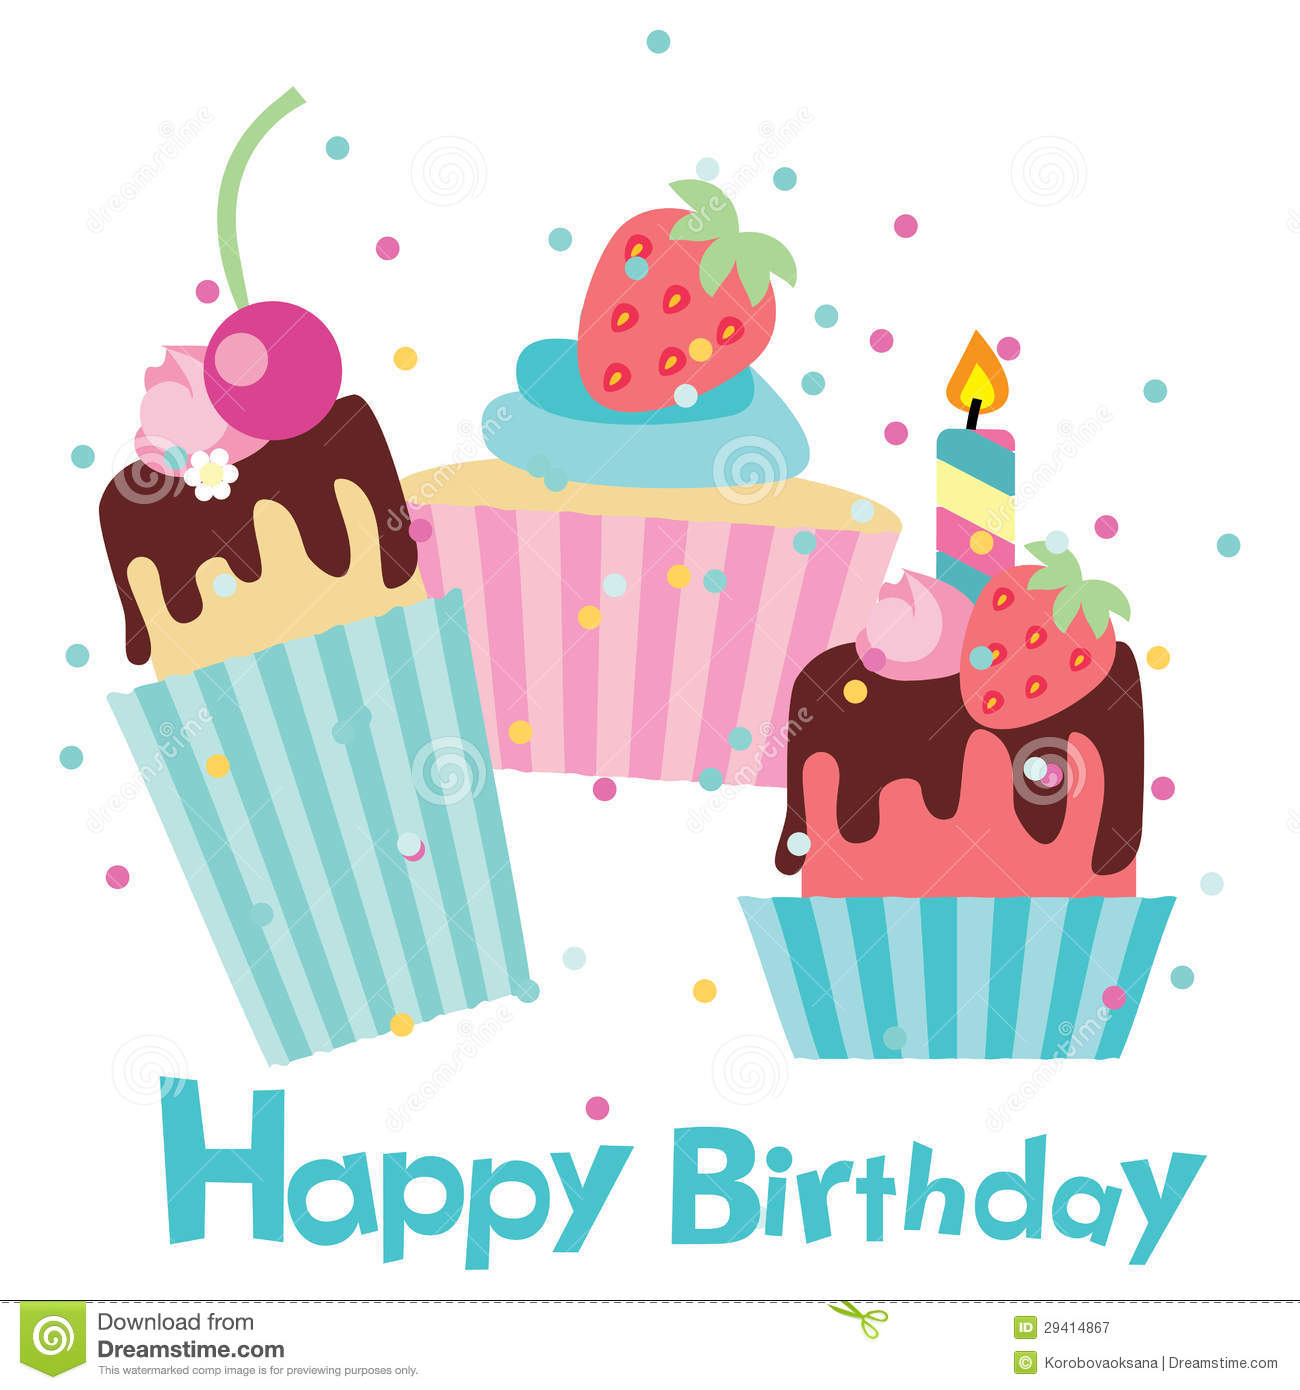 Royalty Free Birthday Images ~ Vector happy birthday card royalty free stock photography image